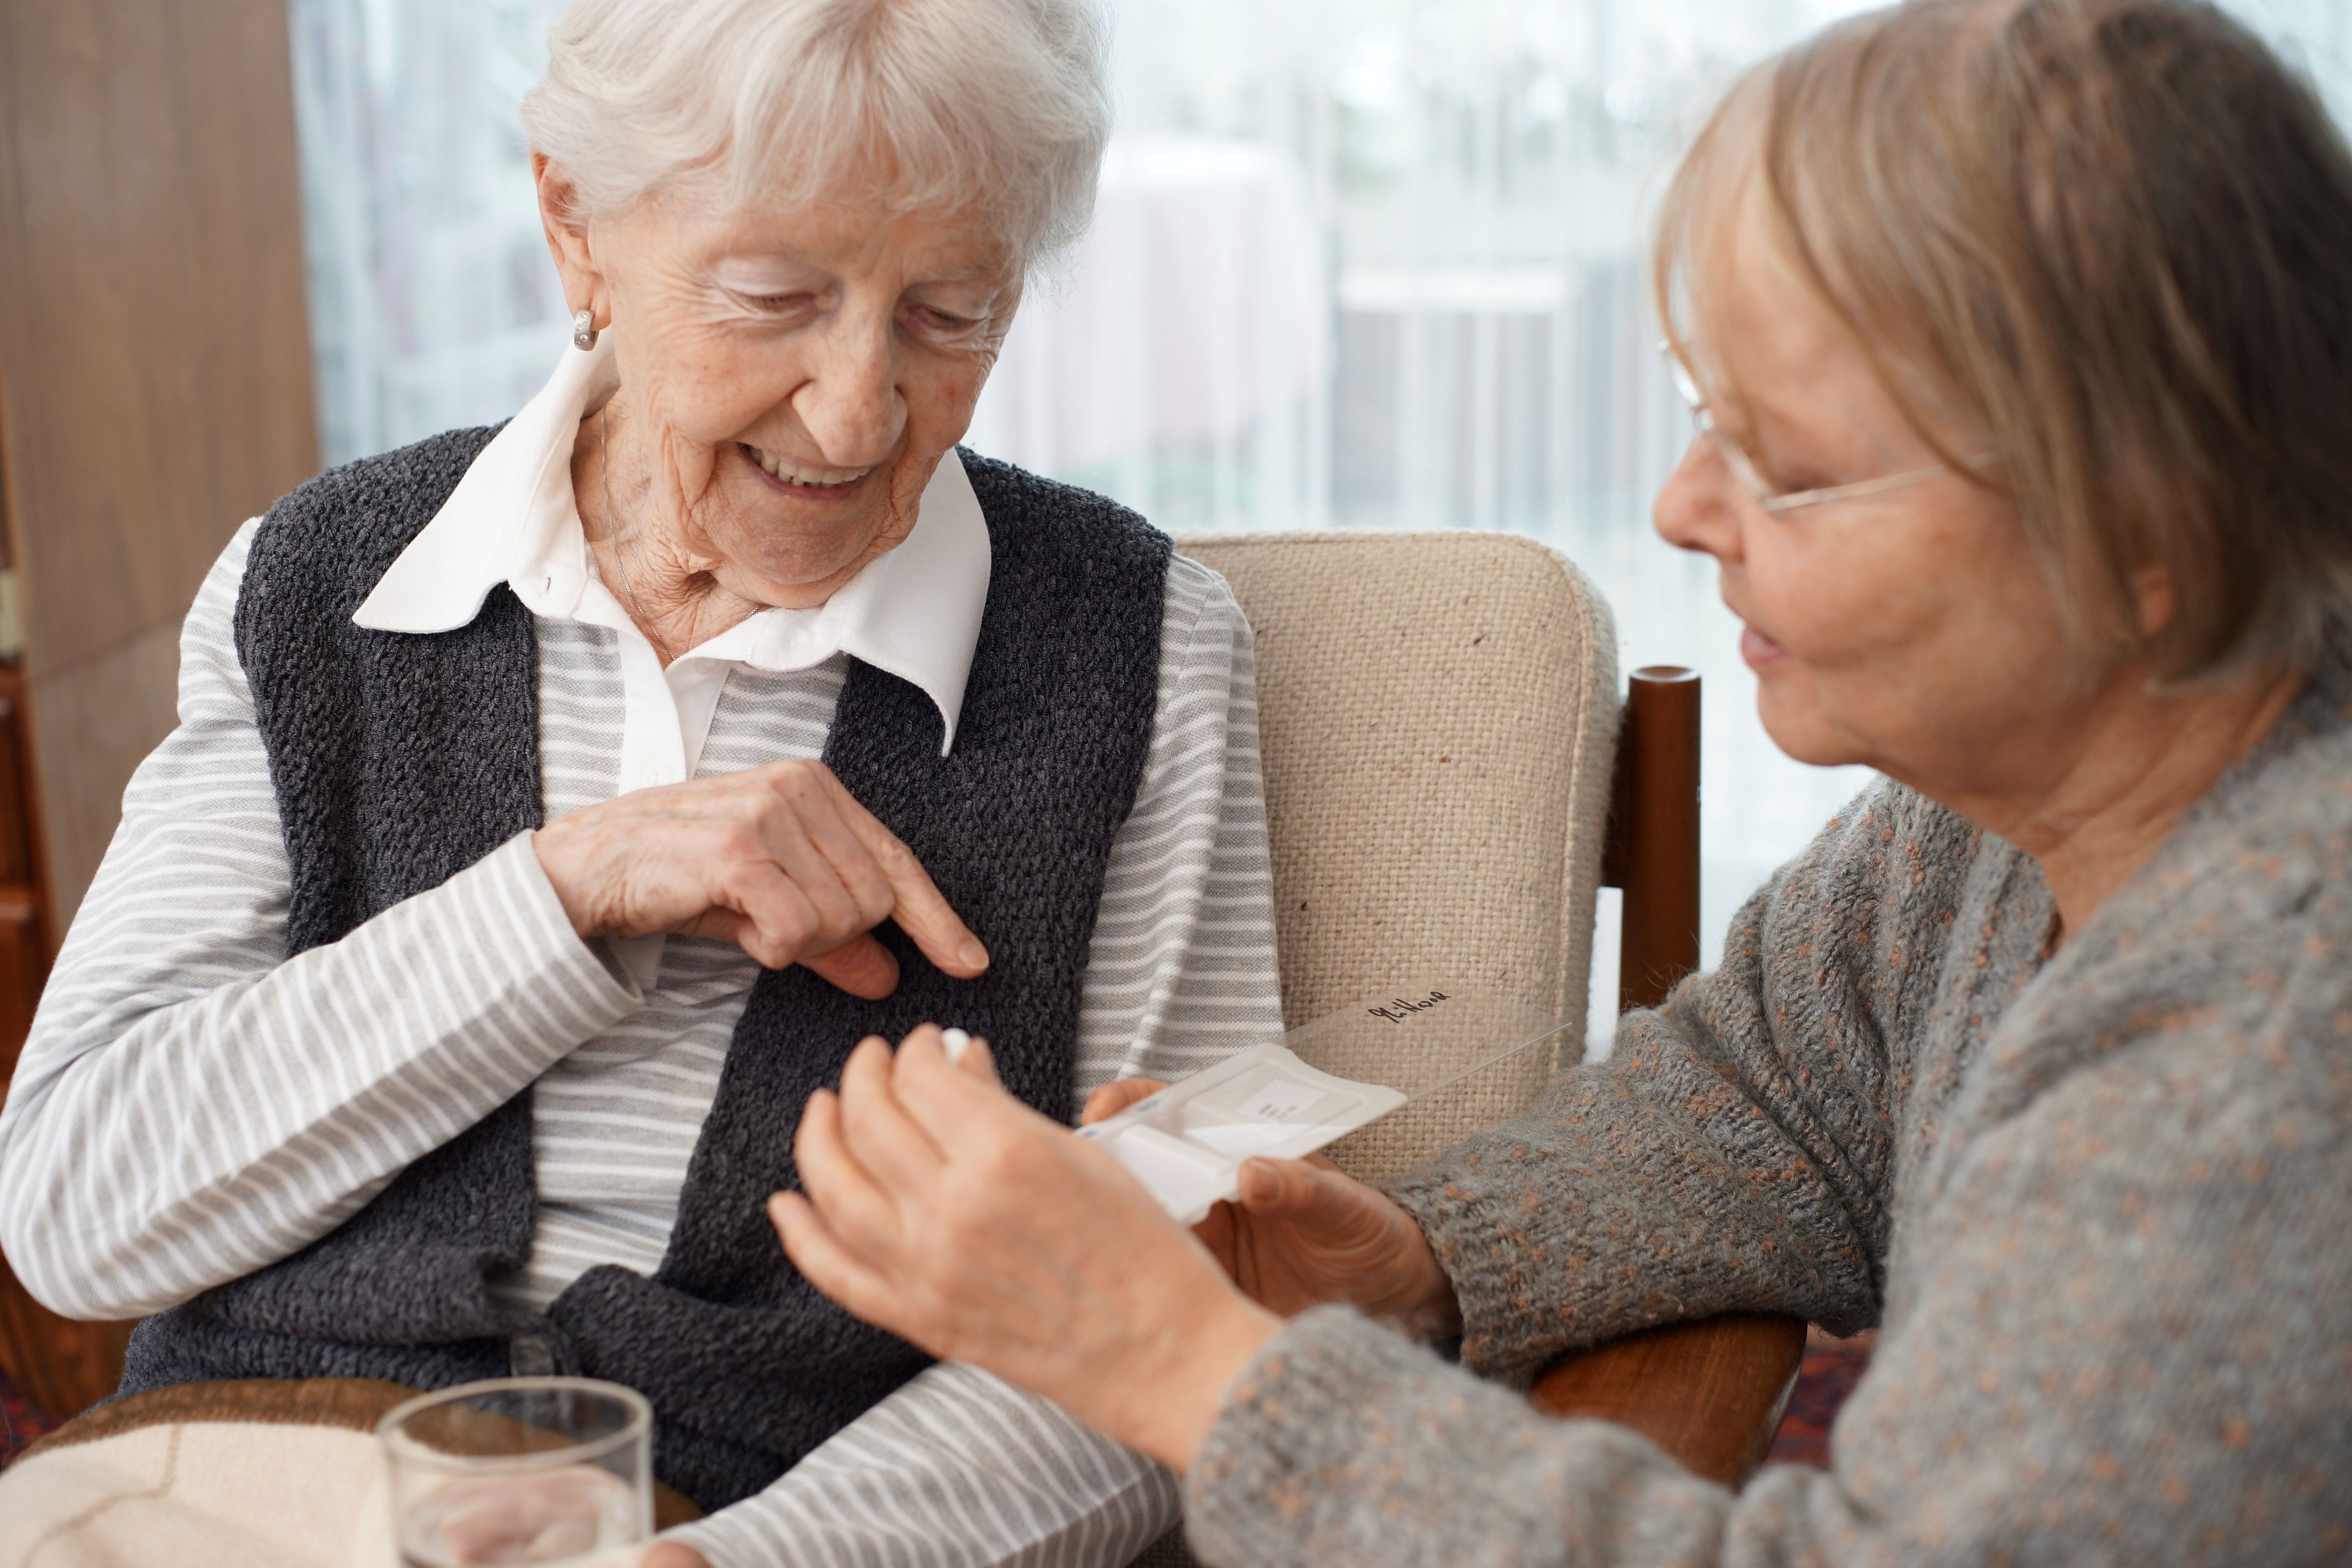 older-woman-sitting-and-pointing-to-medication-with-her-daughter